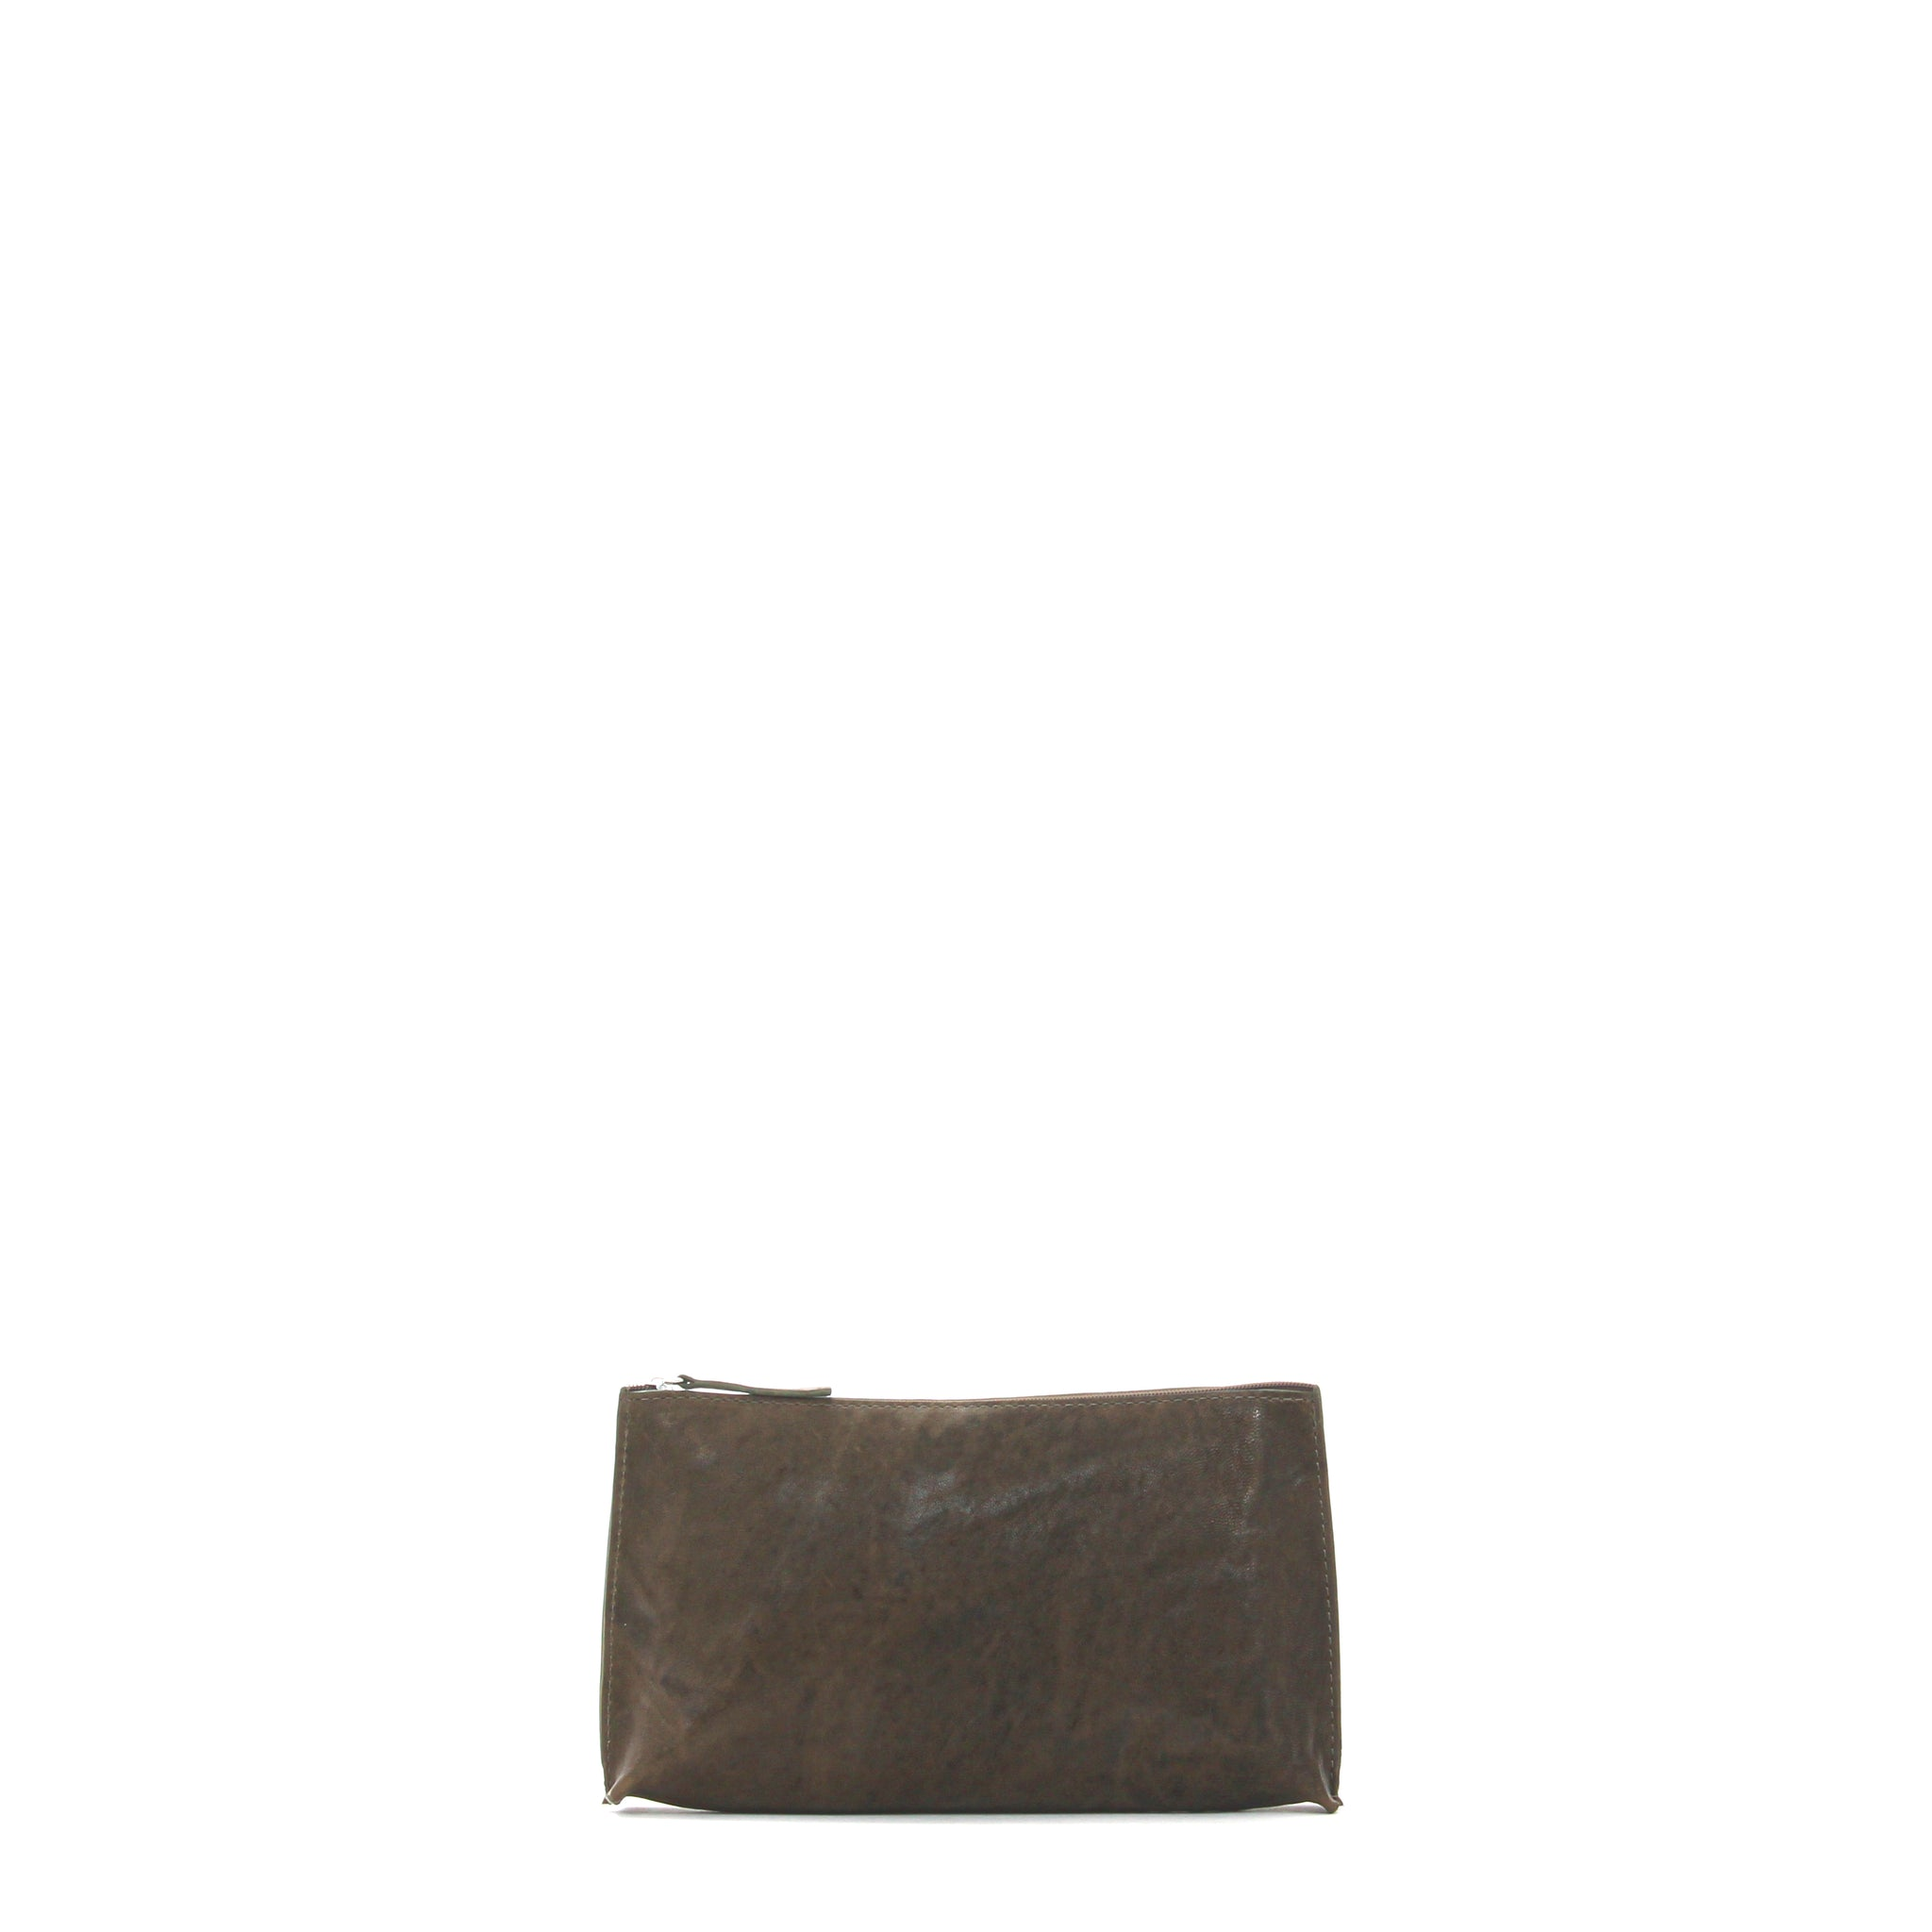 ESSENTIAL POUCH OLIVE RUMPLED SHEEPSKIN